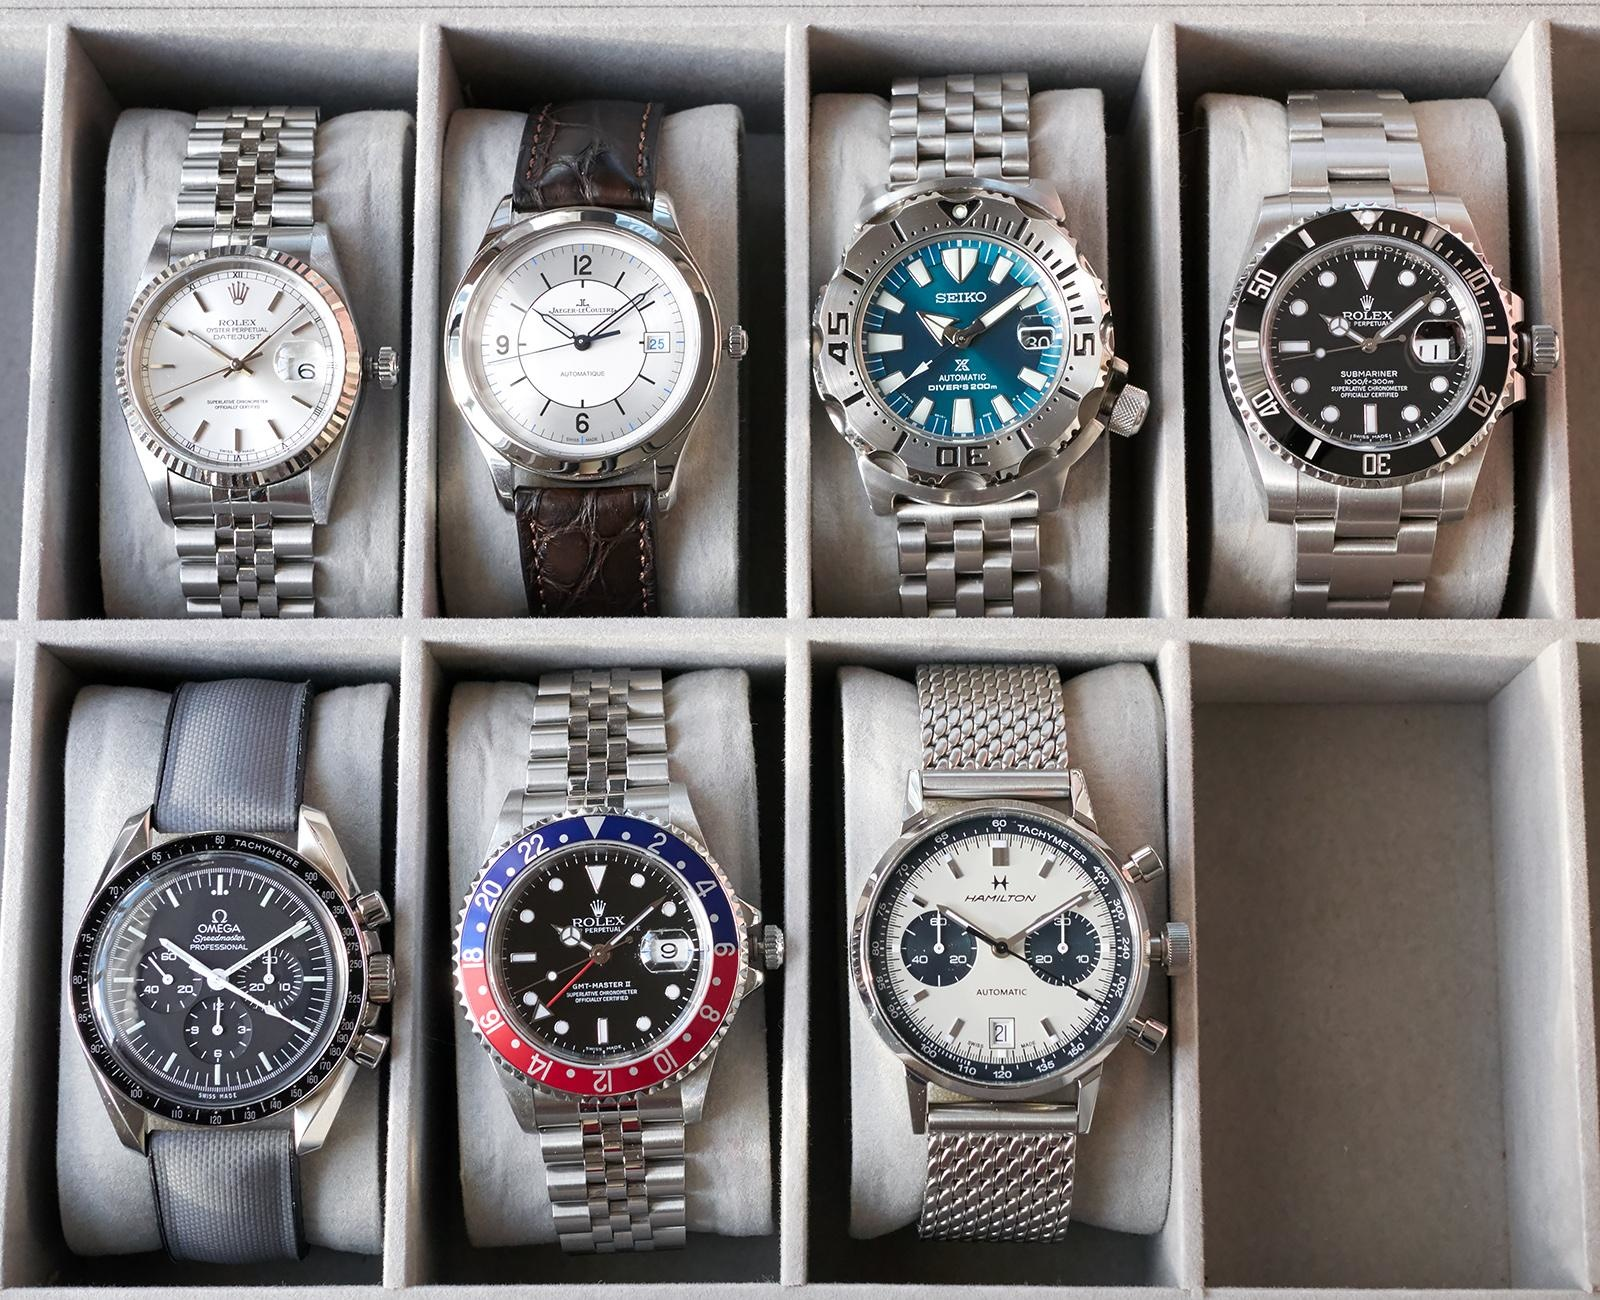 Selling Used Watches And Way To Become Watch Collector